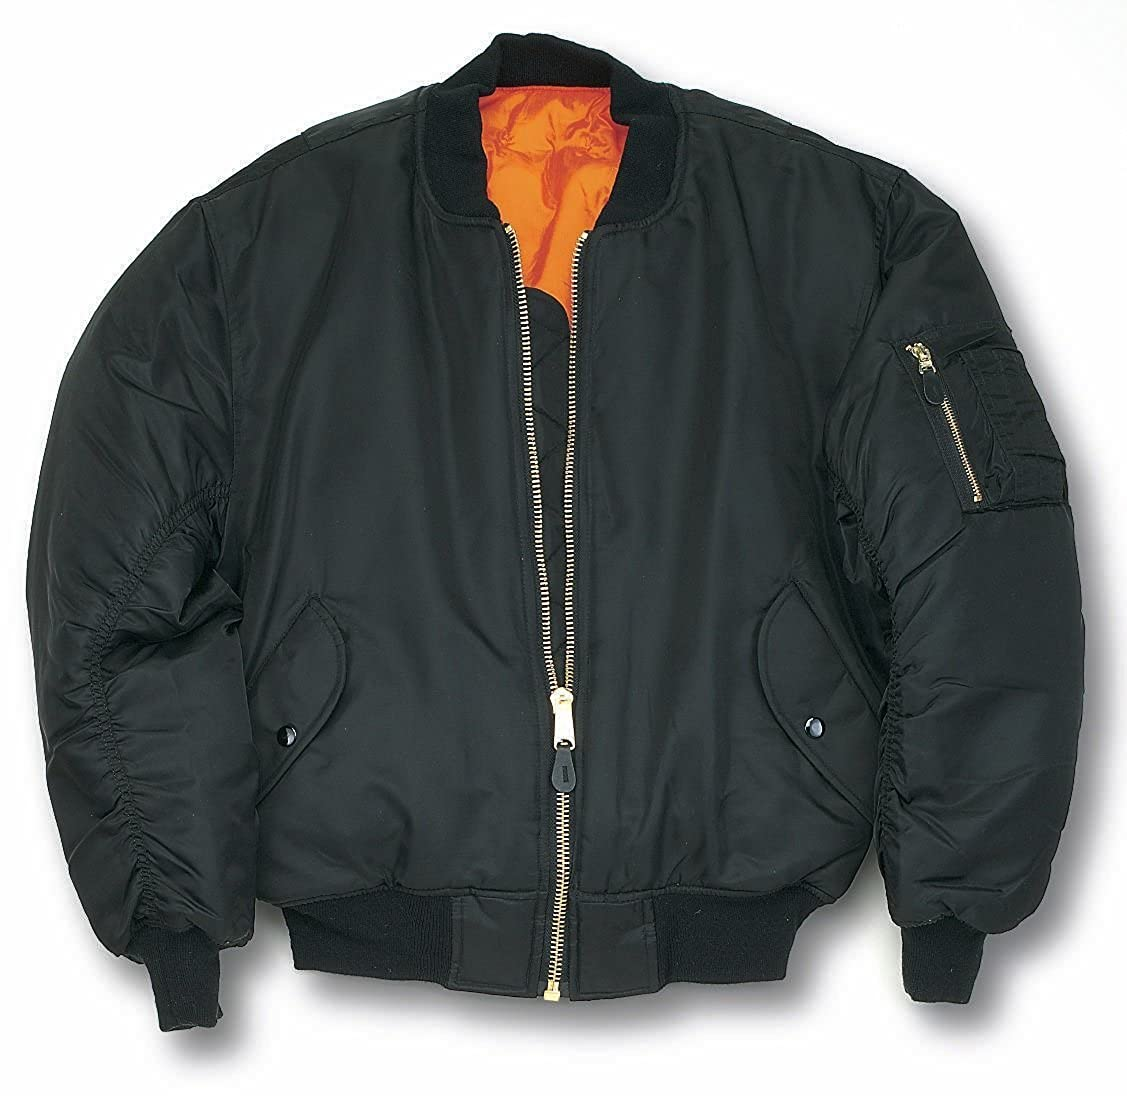 MA1 Bomber Flight Jacket With Heavy Brass Zip: Amazon.co.uk: Clothing